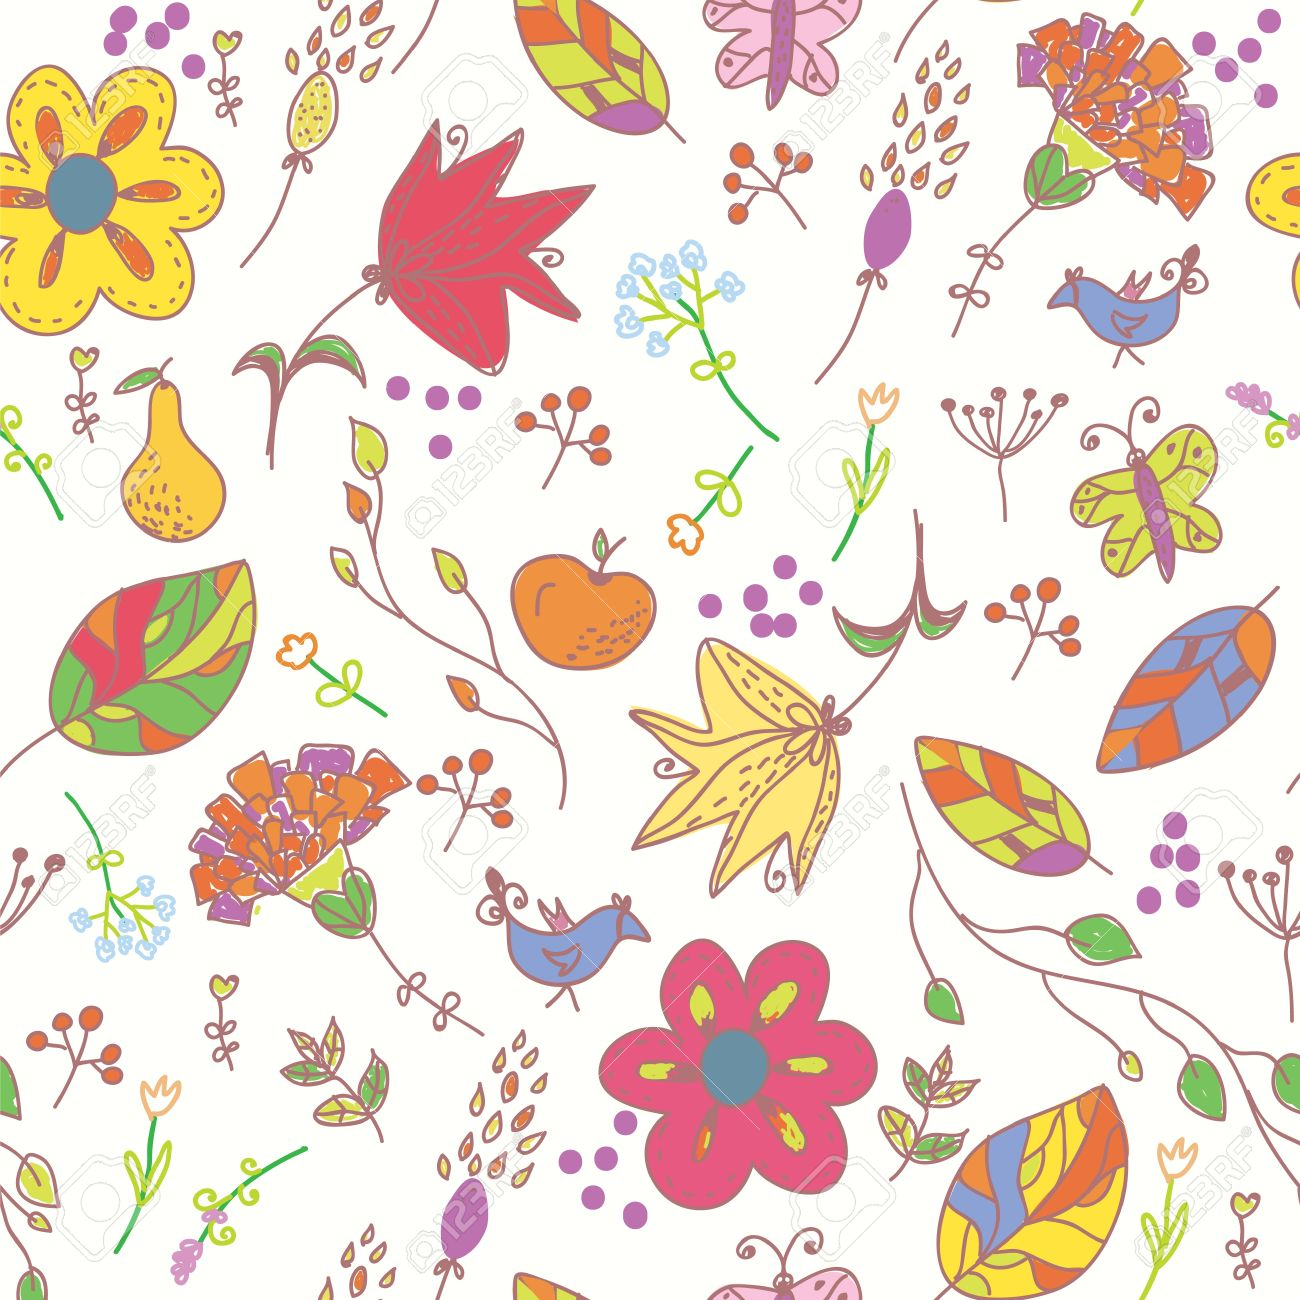 Wallpaper With Birds floral pastel seamless wallpaper with birds and butterflies